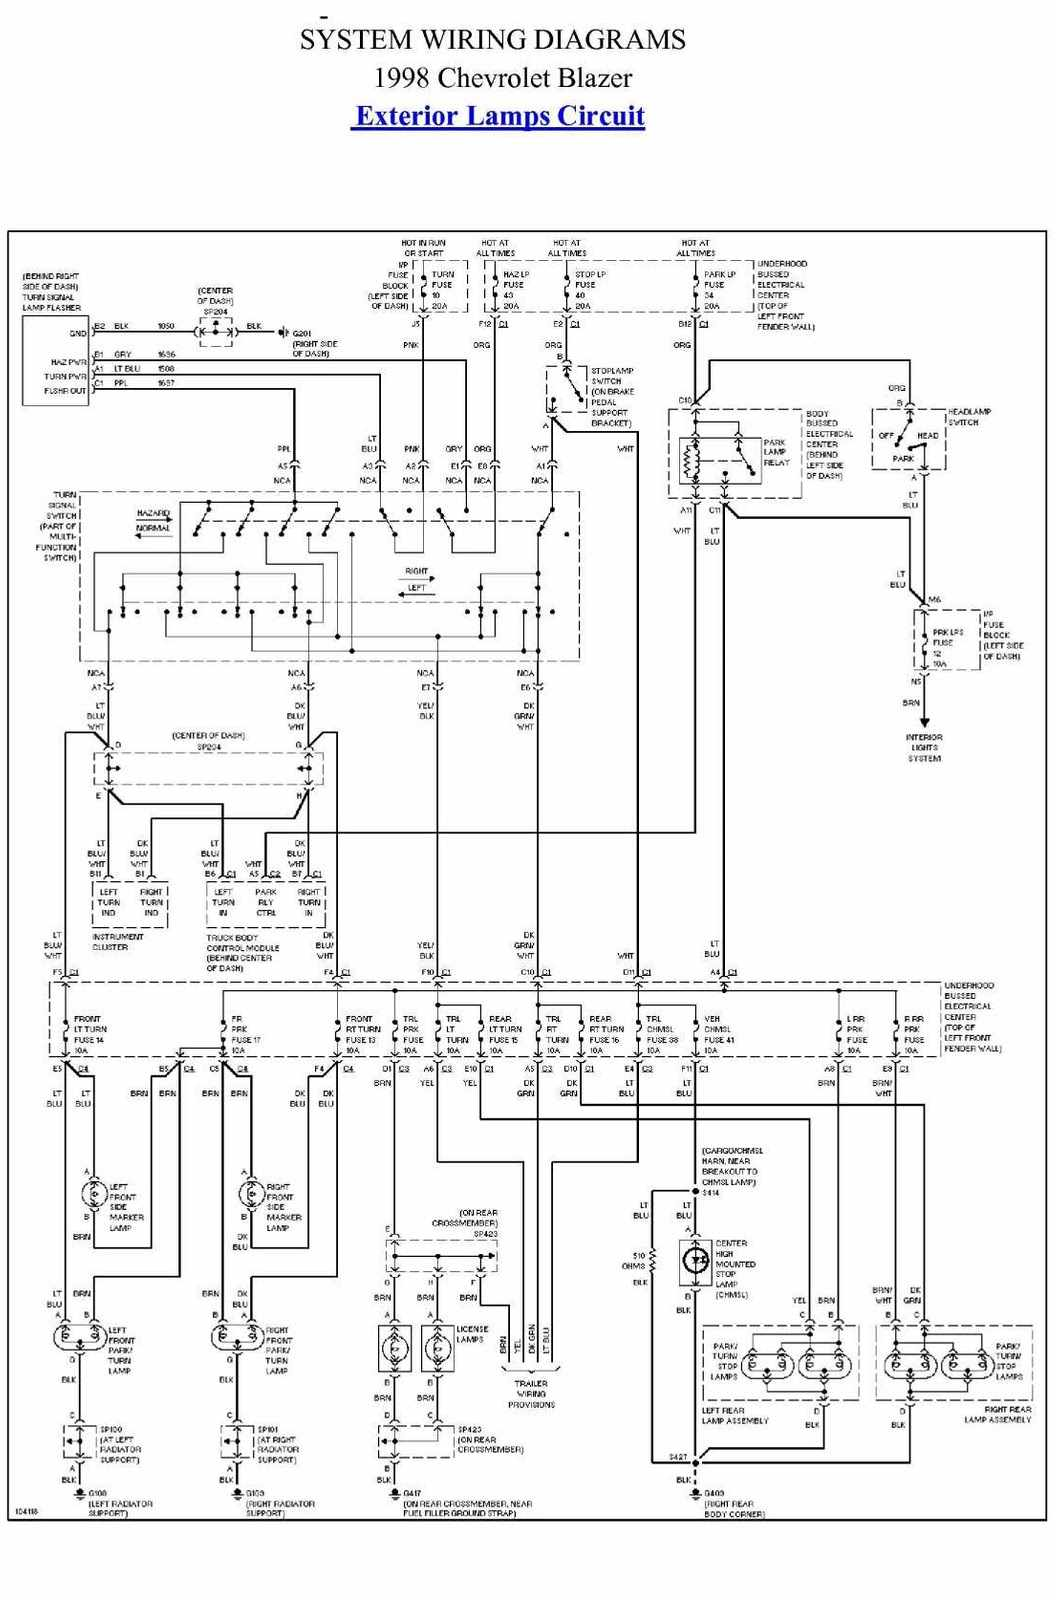 exterior lamp circuit diagram of 1998 chevrolet blazer. Black Bedroom Furniture Sets. Home Design Ideas